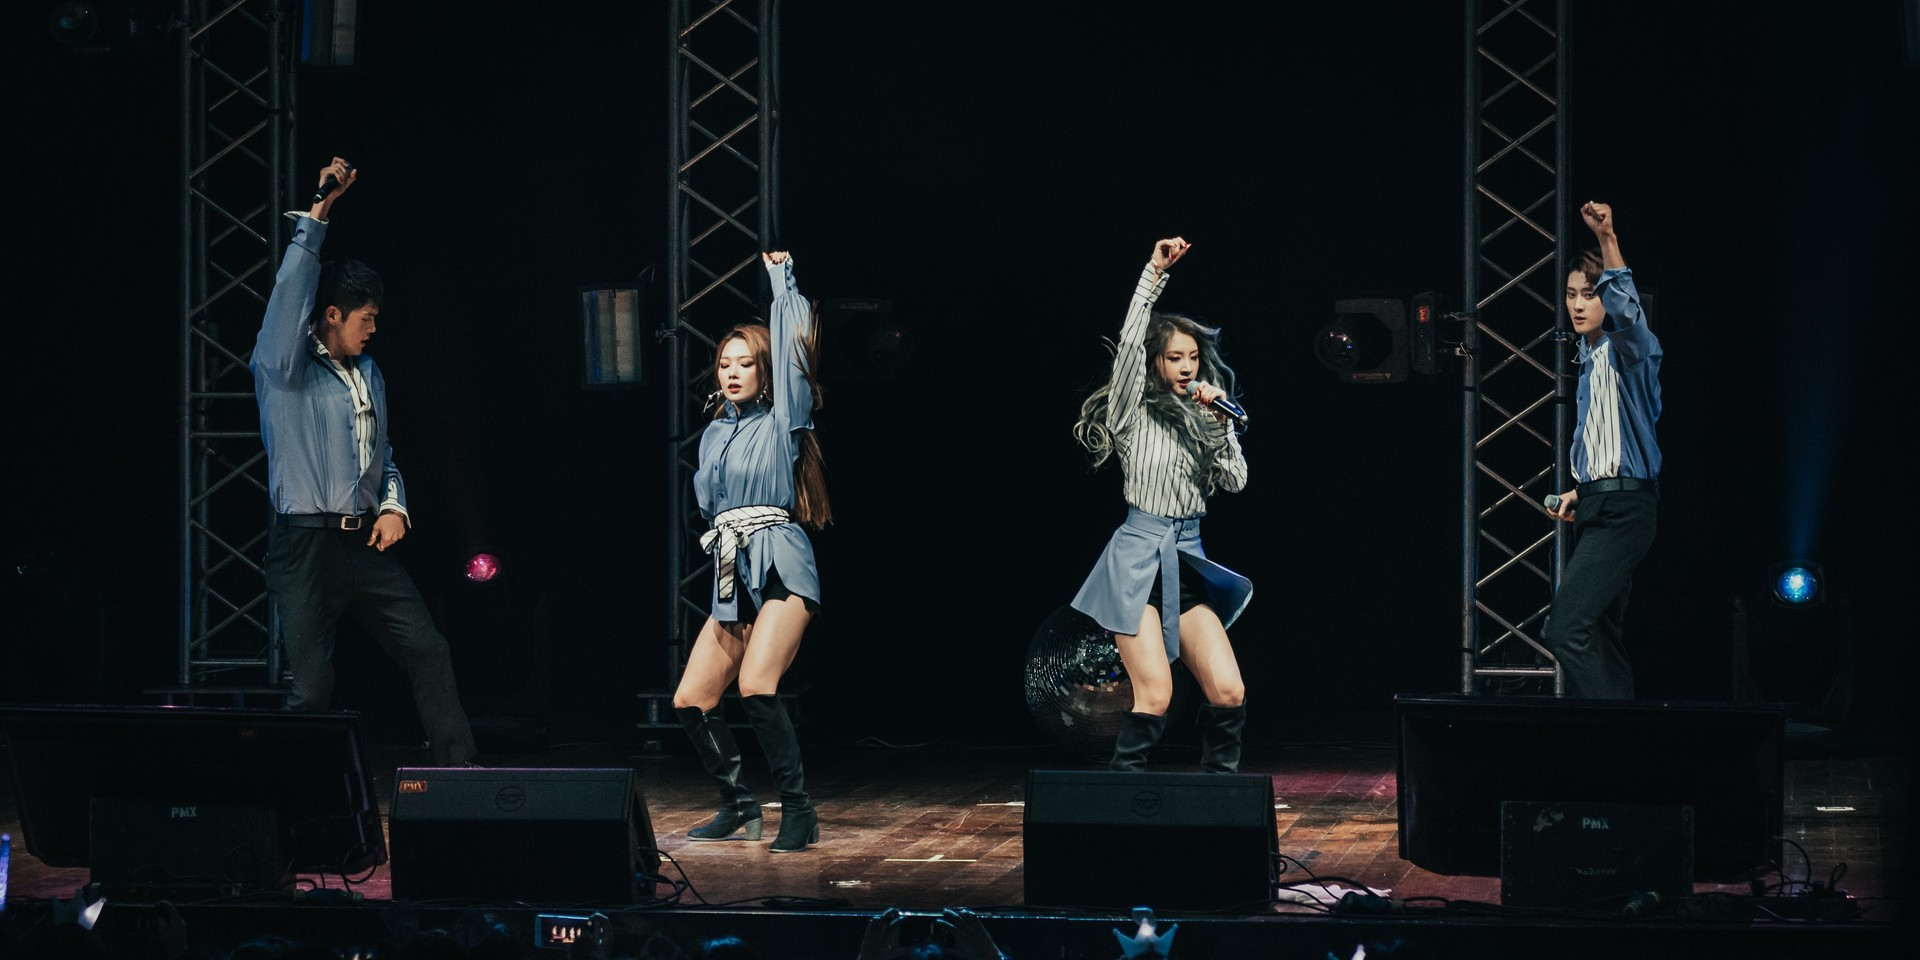 KARD turns up the heat in Manila with a heartwarming last leg of their Asia tour – gig report